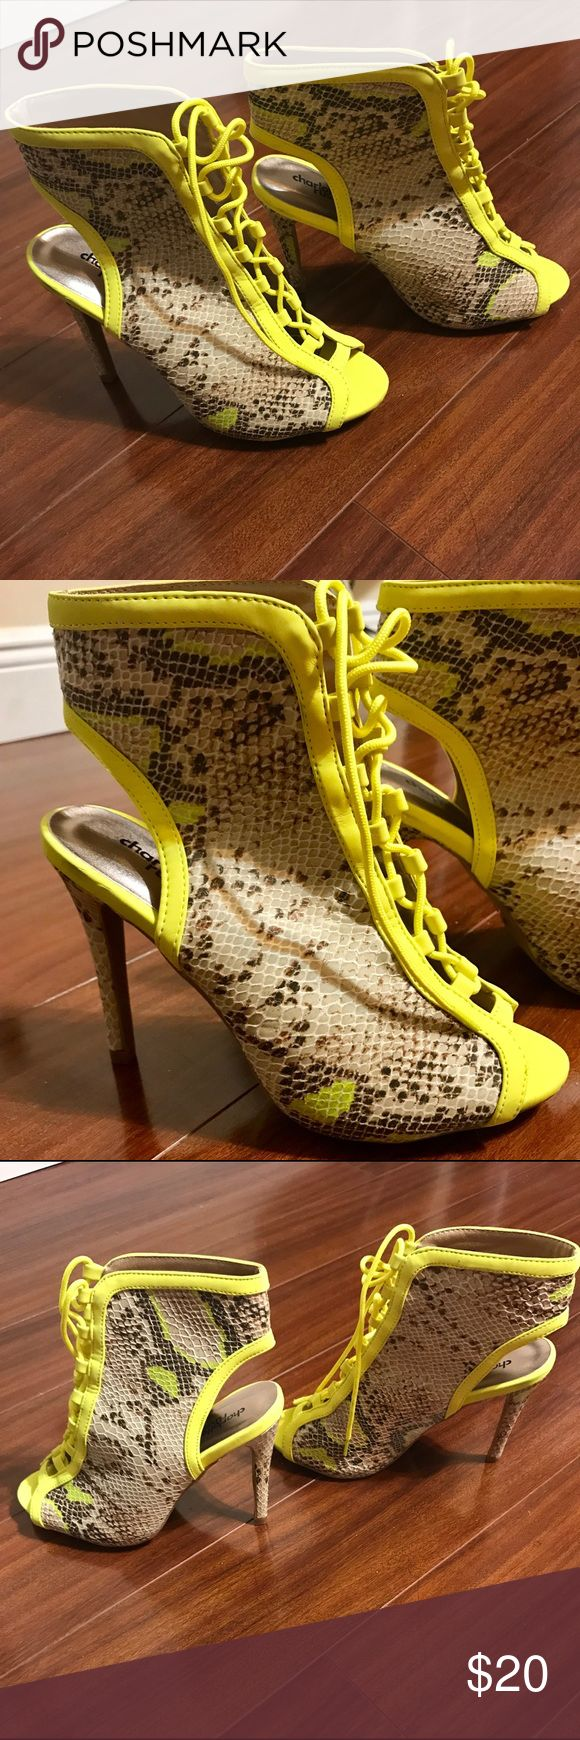 Charlotte Rouse Shoes Brown snake skin leather- color and yellow new shoes, Open toe, 4 1/2 inches high heels Charlotte Russe Shoes Heels